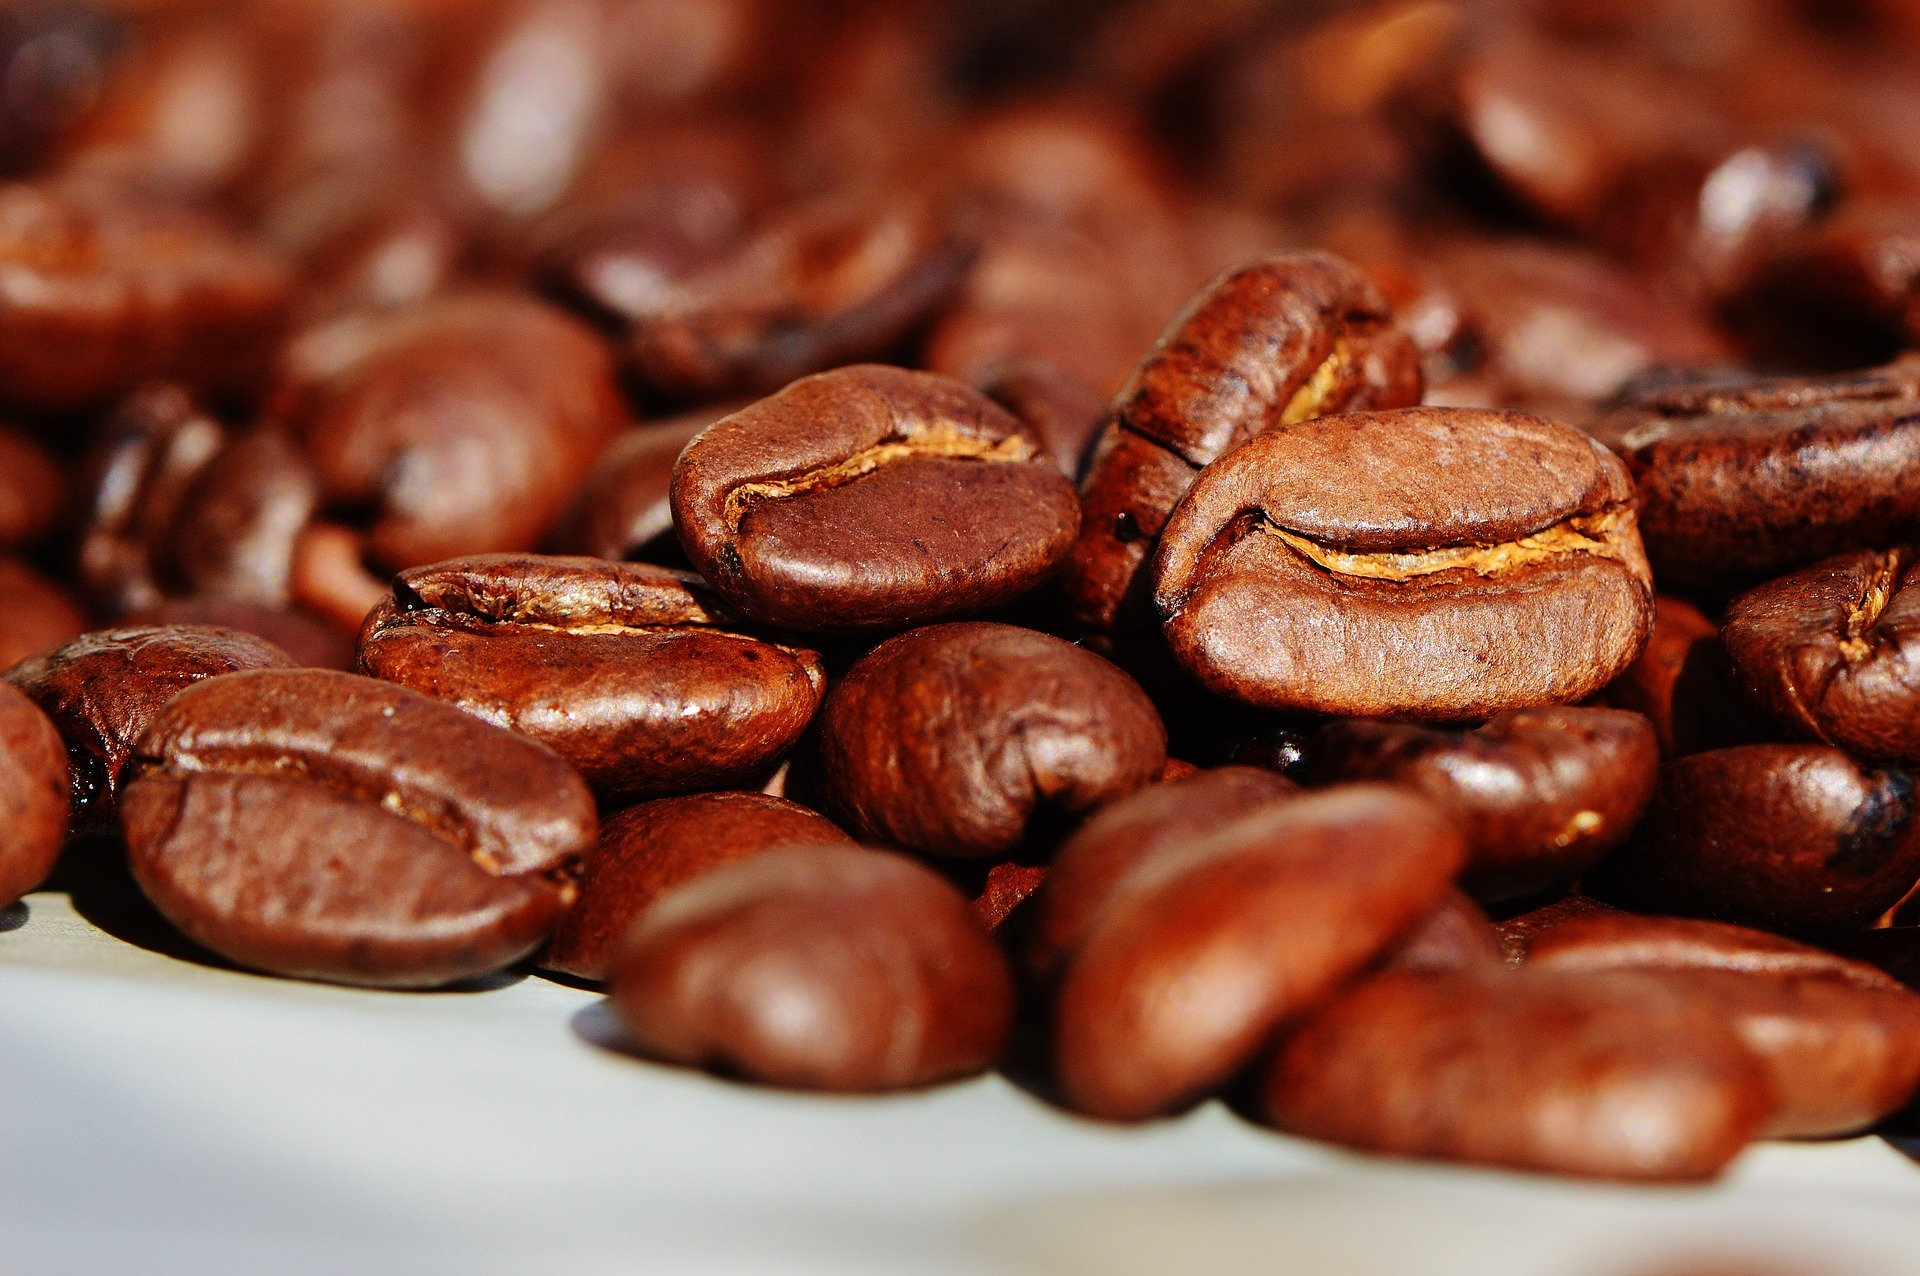 Research Demonstrates that Coffee reduces the Risk of Liver Disease